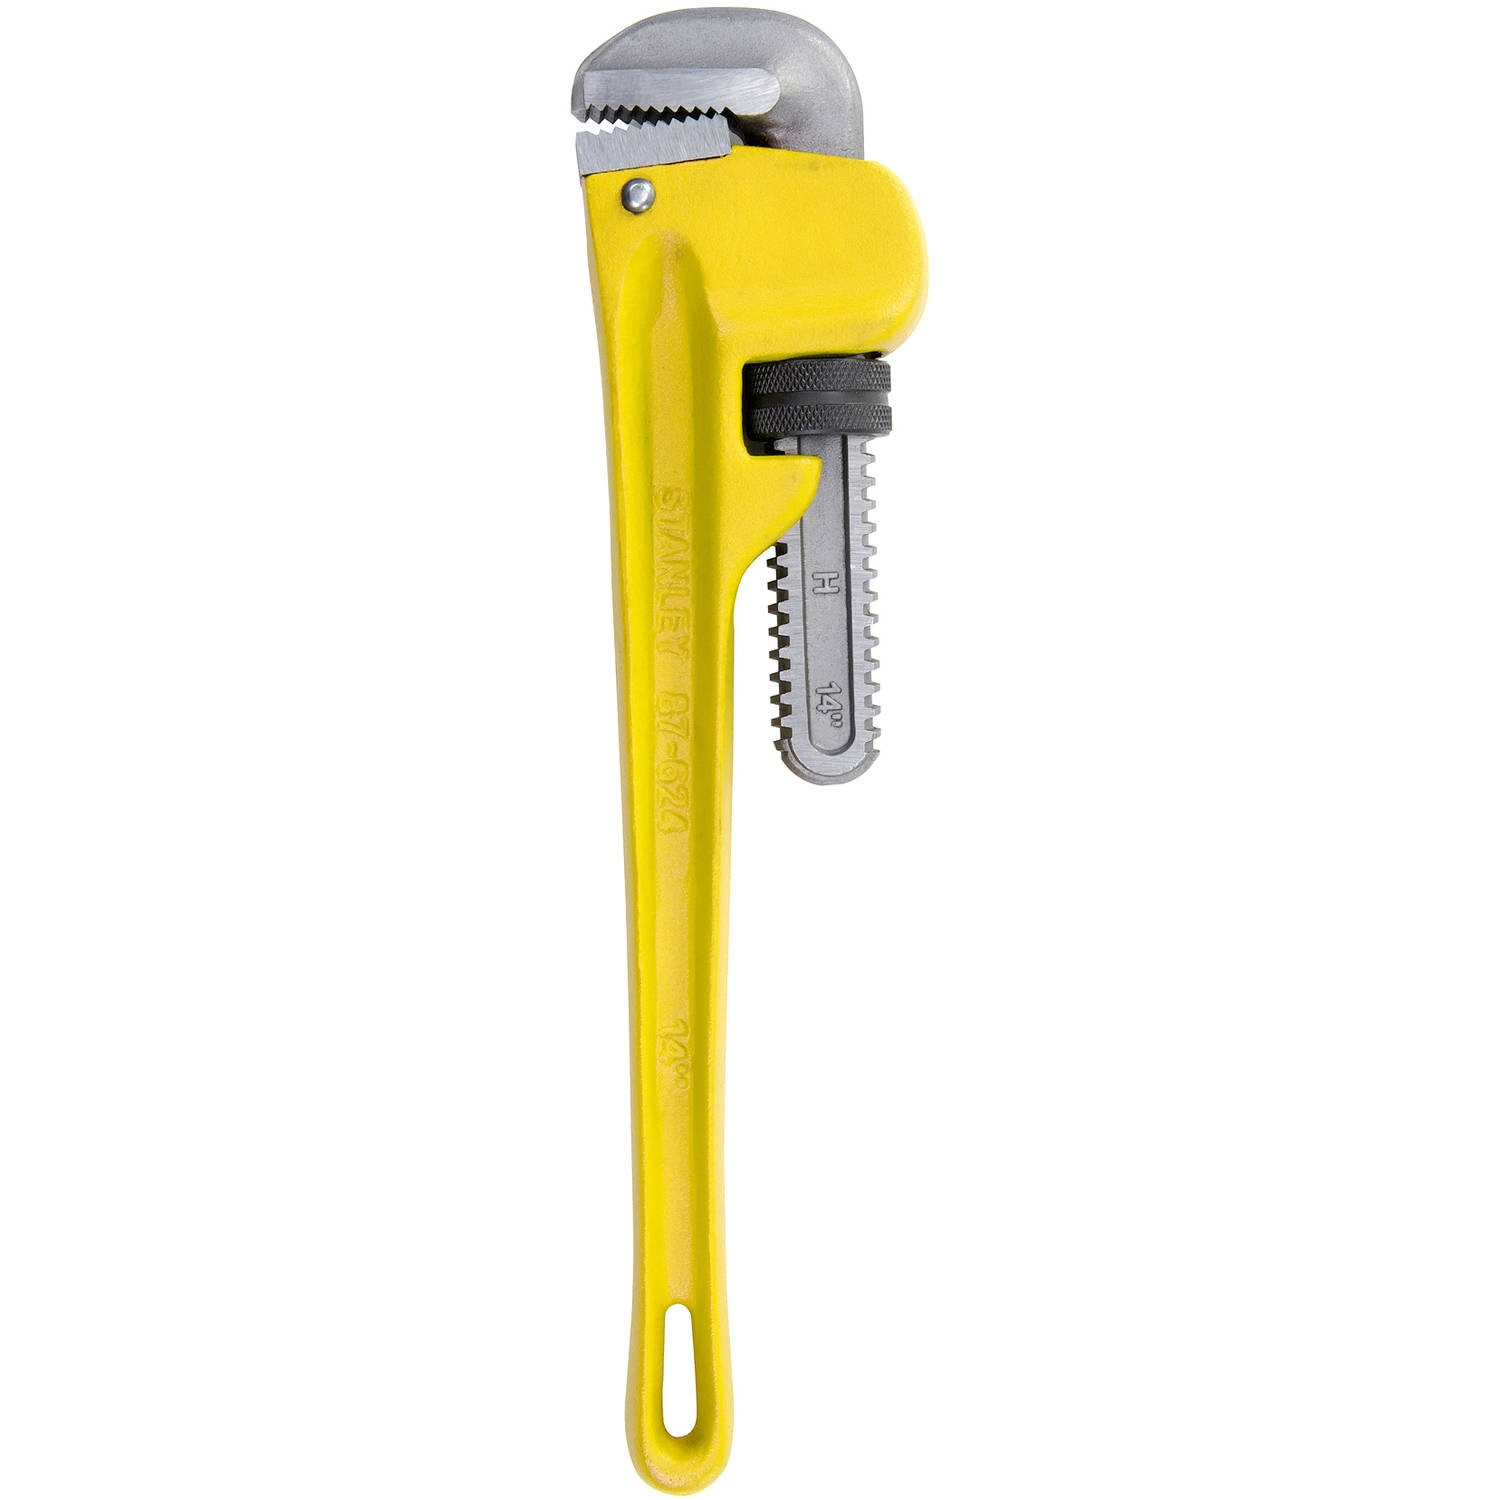 Stanley 14'' Pipe Wrench, 87-624 - Walmart.com